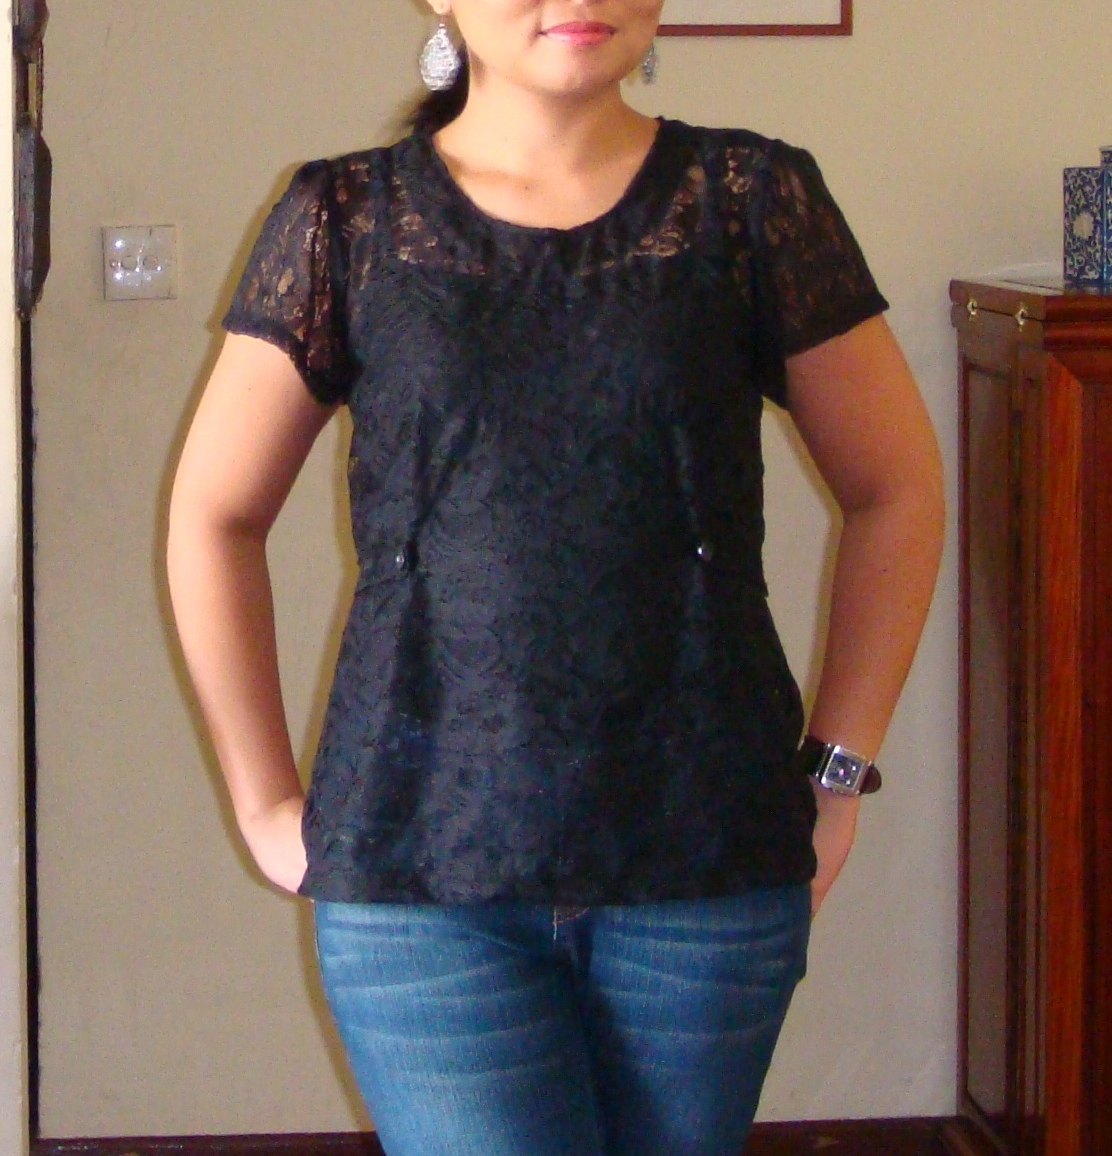 http://velvetribbonsew.blogspot.com/2012/05/black-lace-top.html